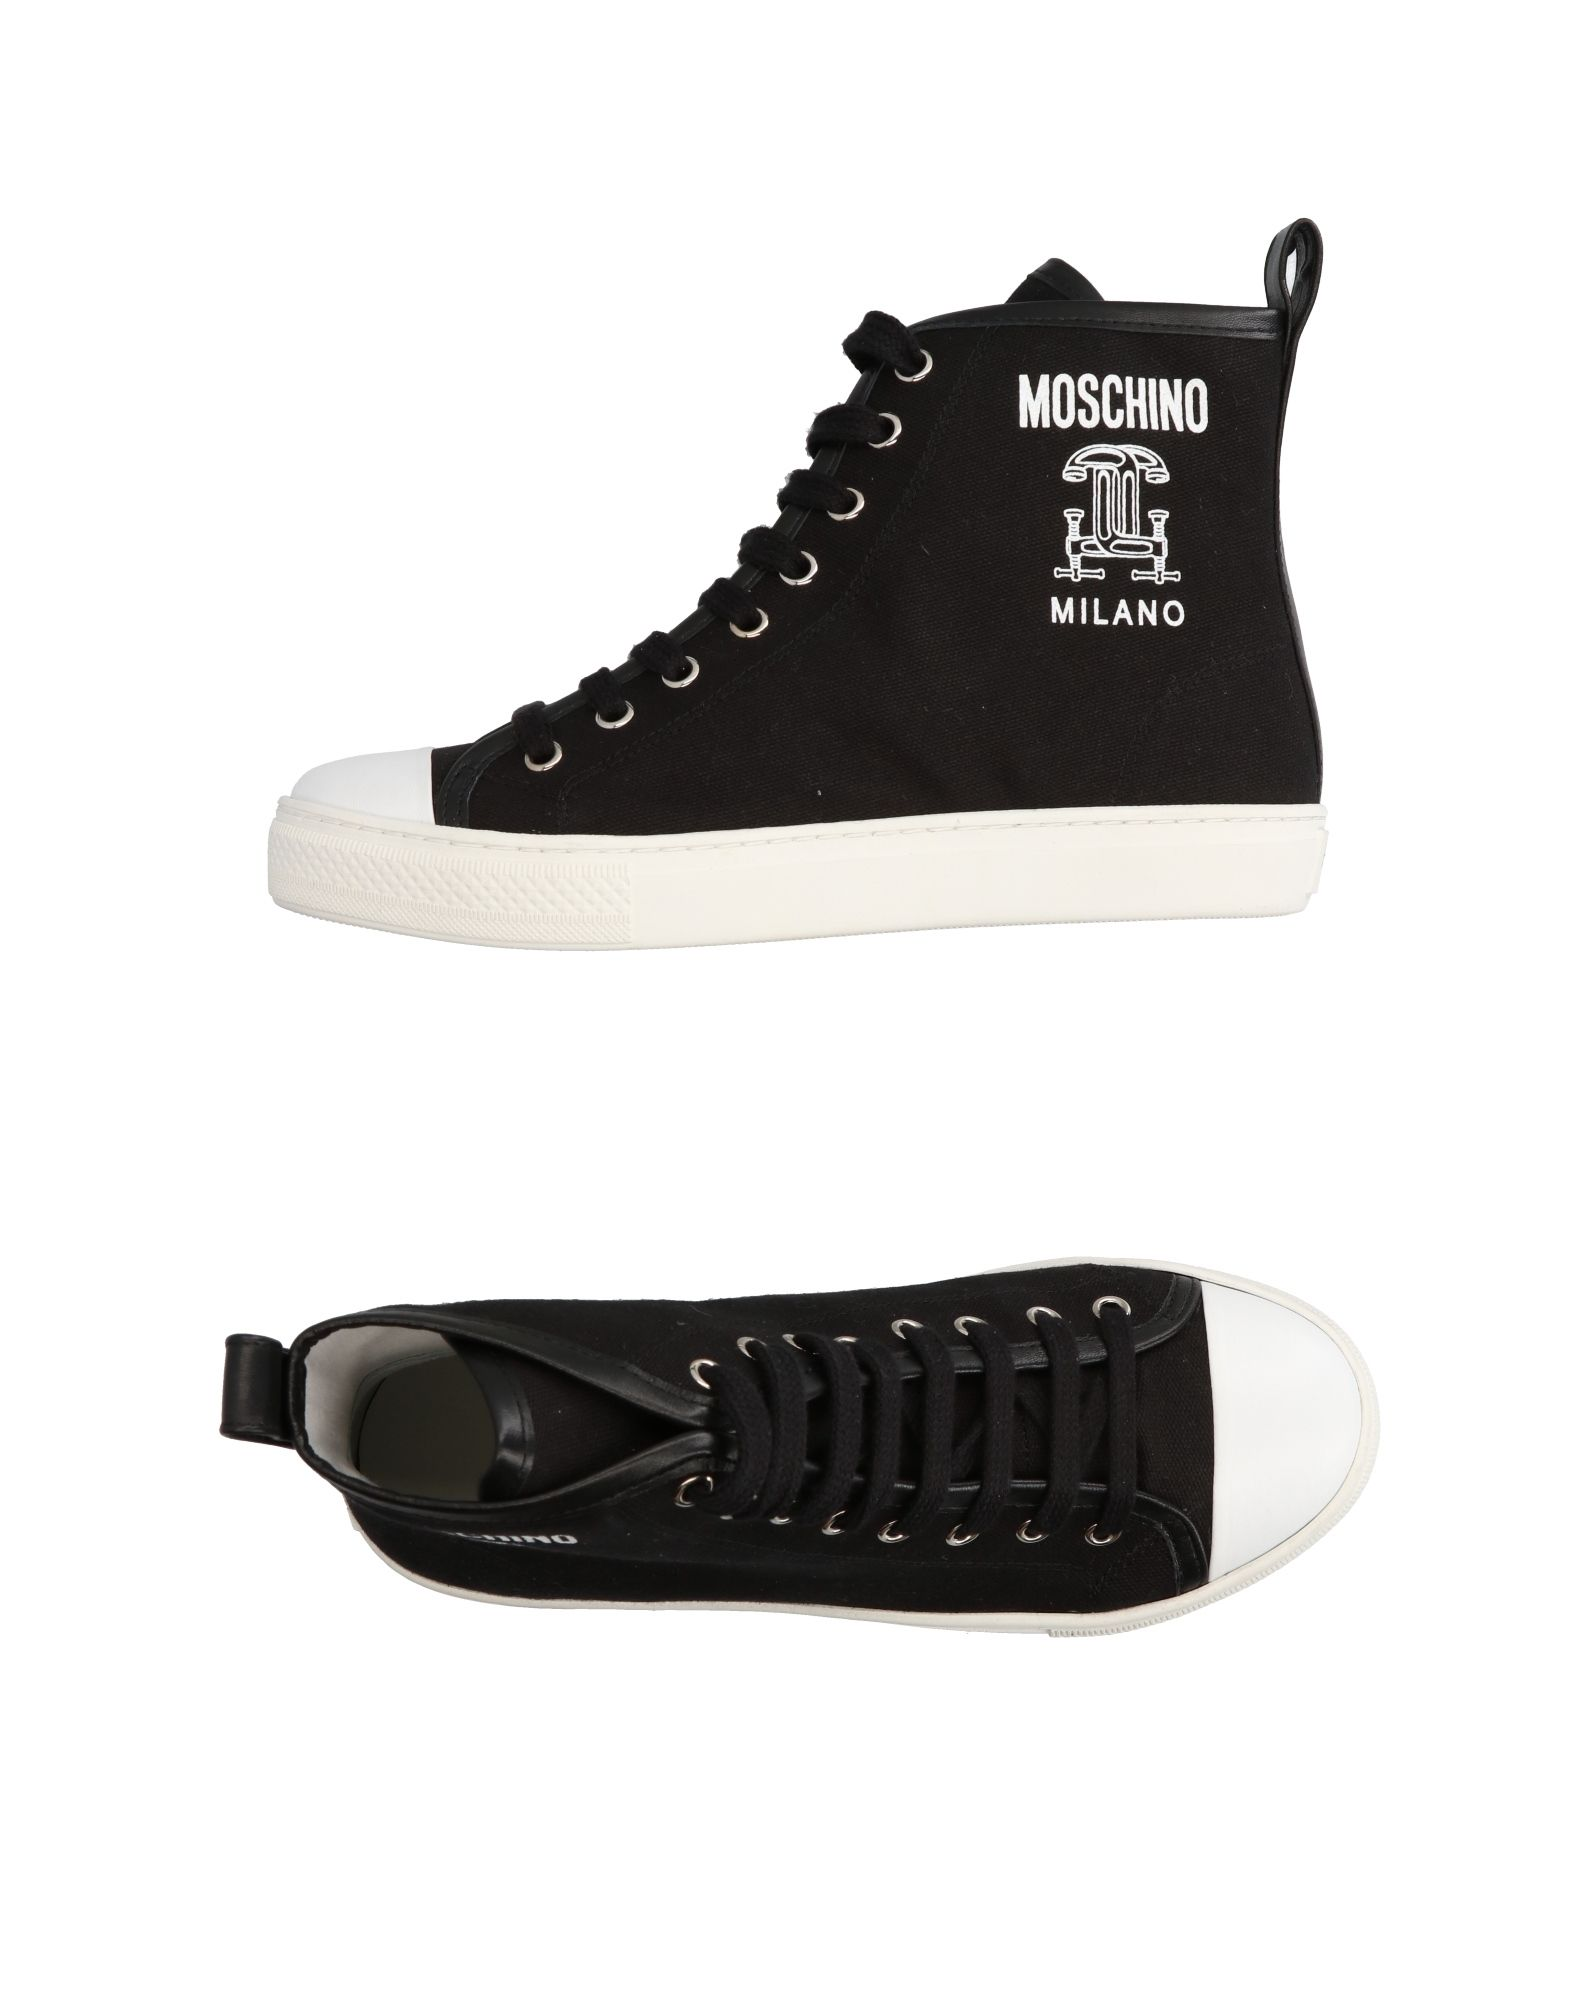 Moschino Sneakers - Women Moschino Australia Sneakers online on  Australia Moschino - 11238290FE 47d069